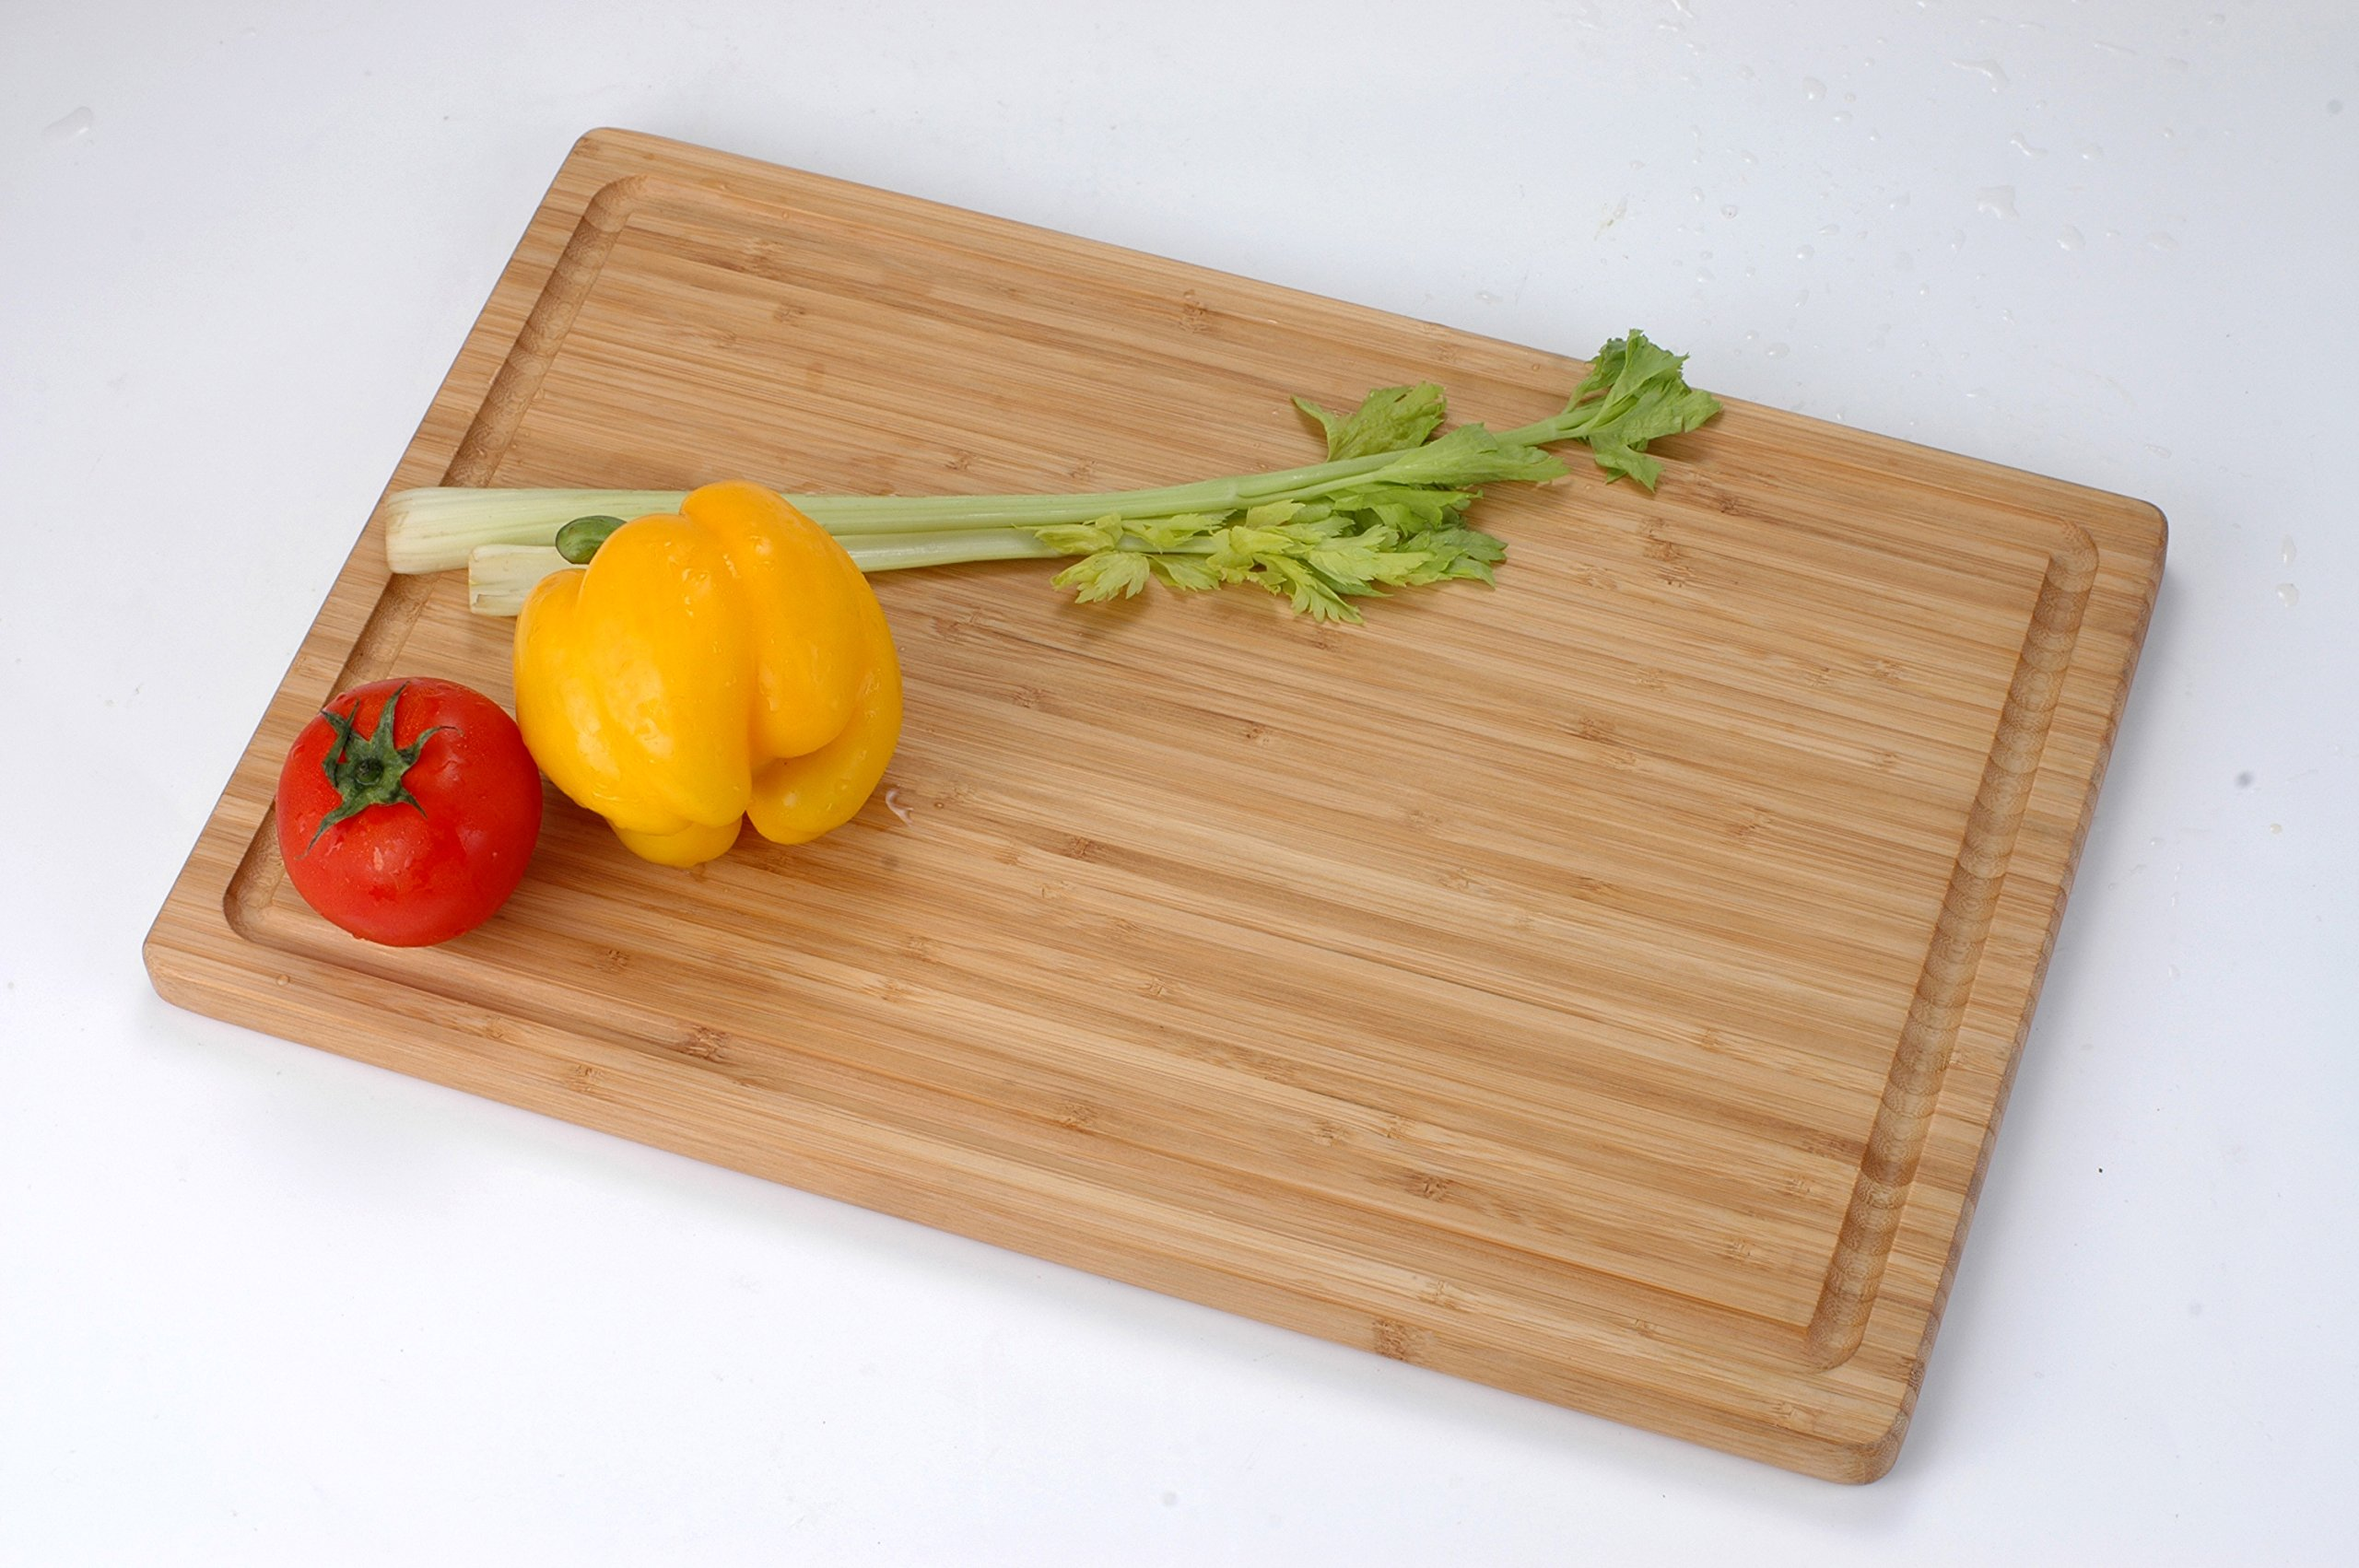 Utopia Kitchen Extra Large Bamboo Cutting Board (16.9 by 12 inch) by Utopia Kitchen (Image #5)